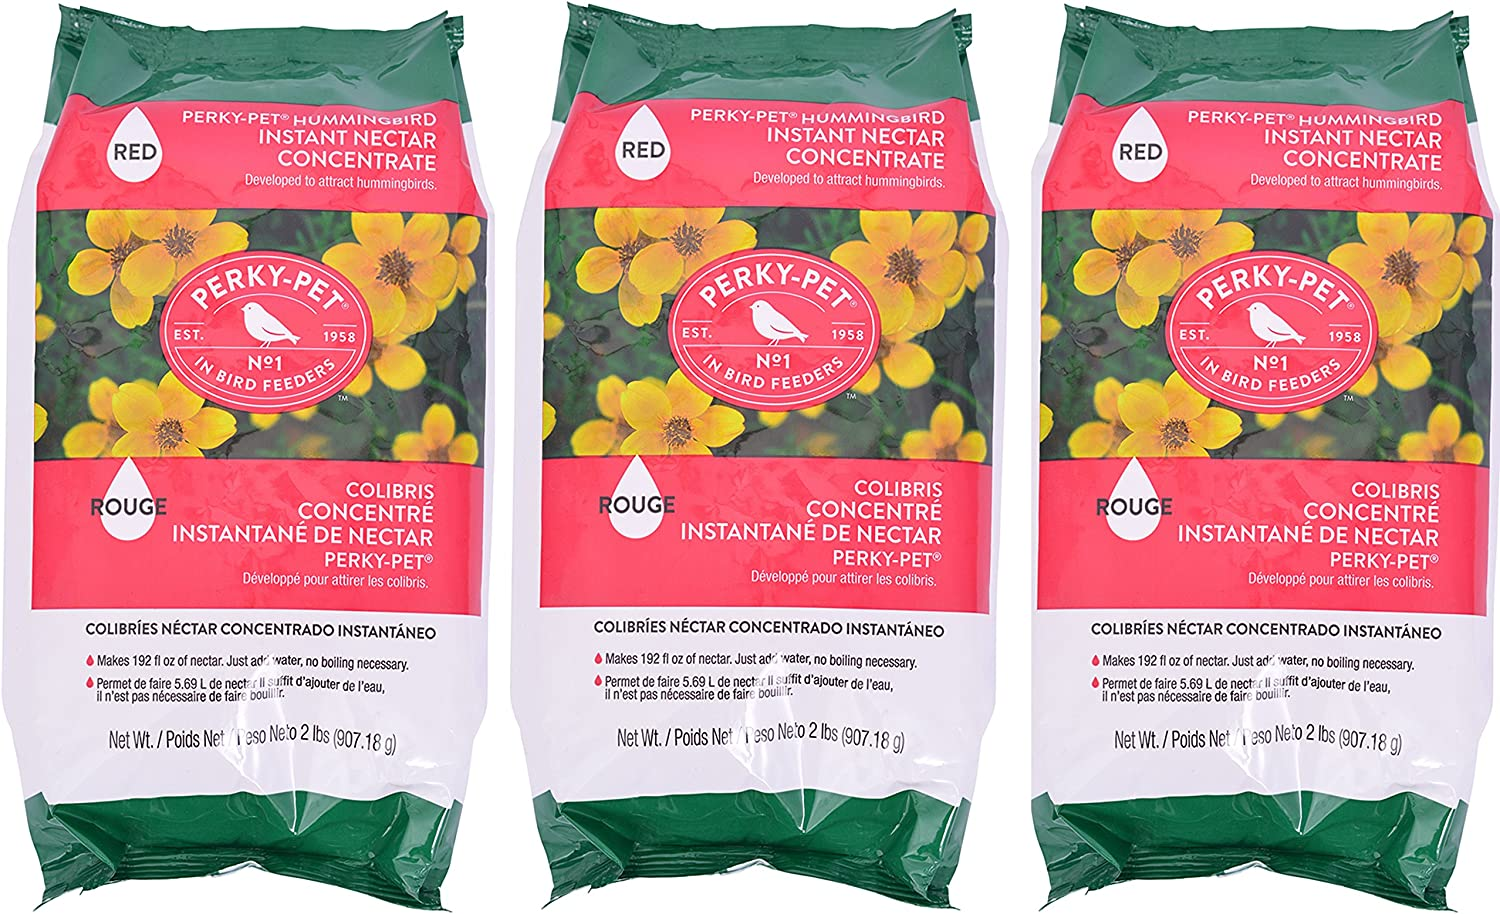 Perky-Pet 244Sfb 2 lb Red Instant Nectar - 3 Pack